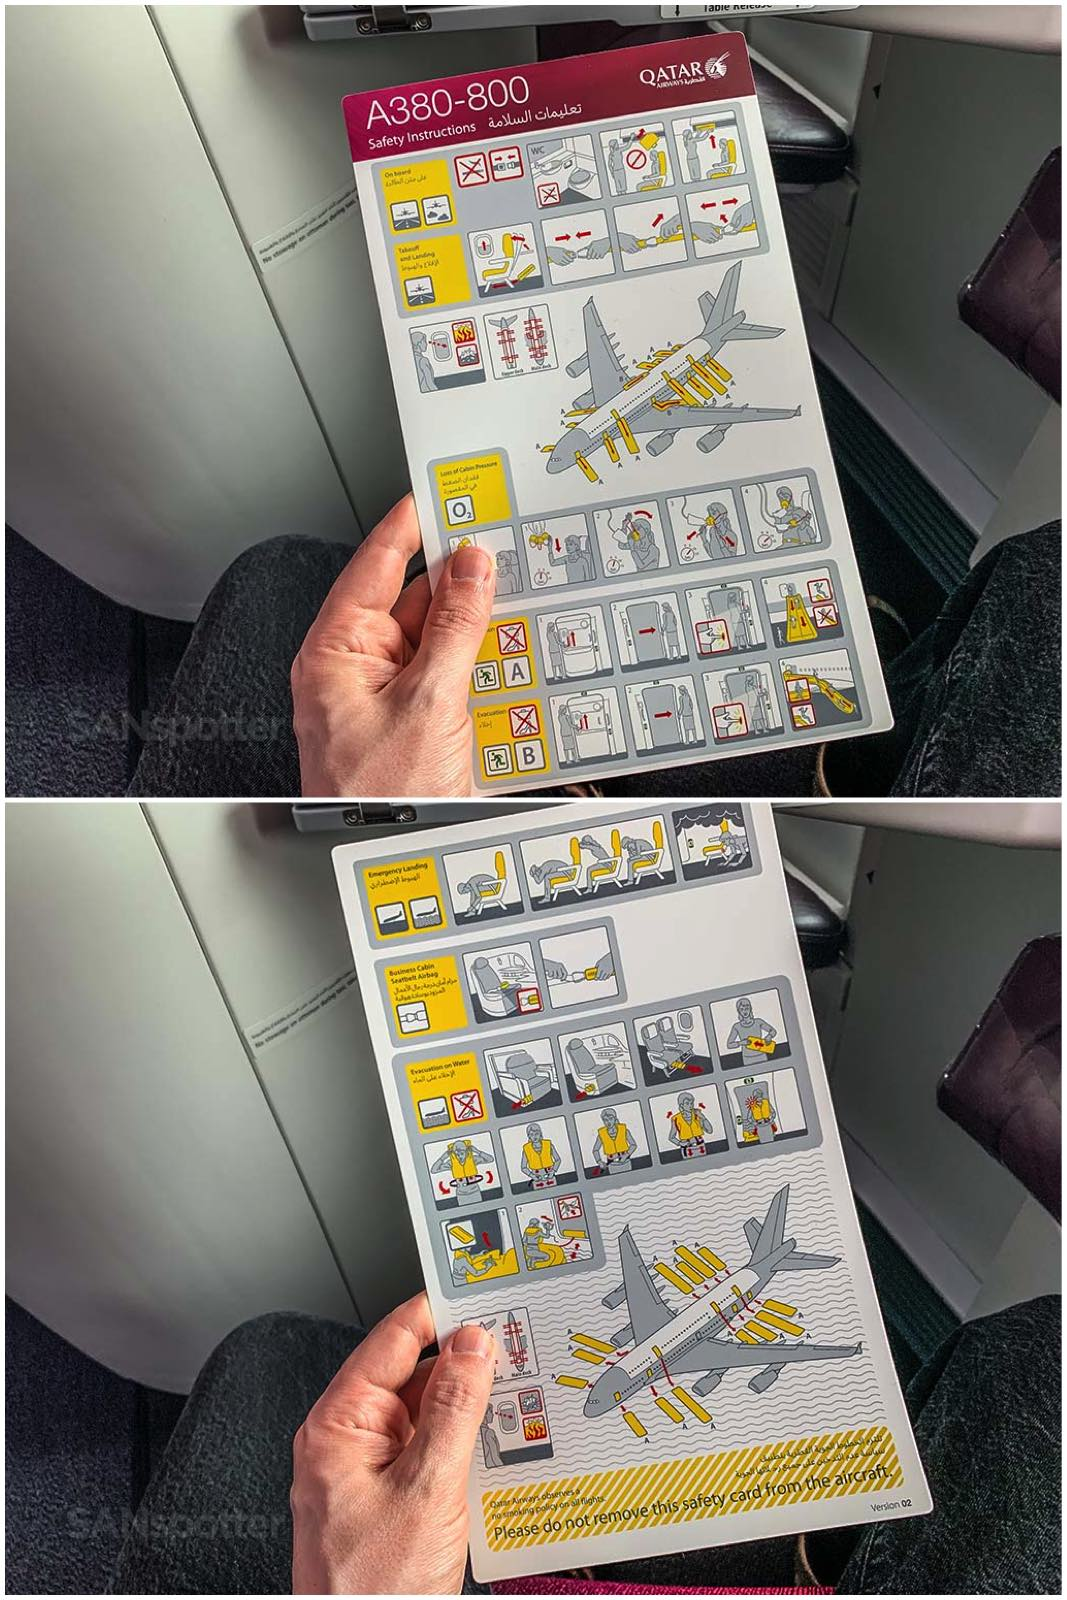 Qatar Airways a380 safety card